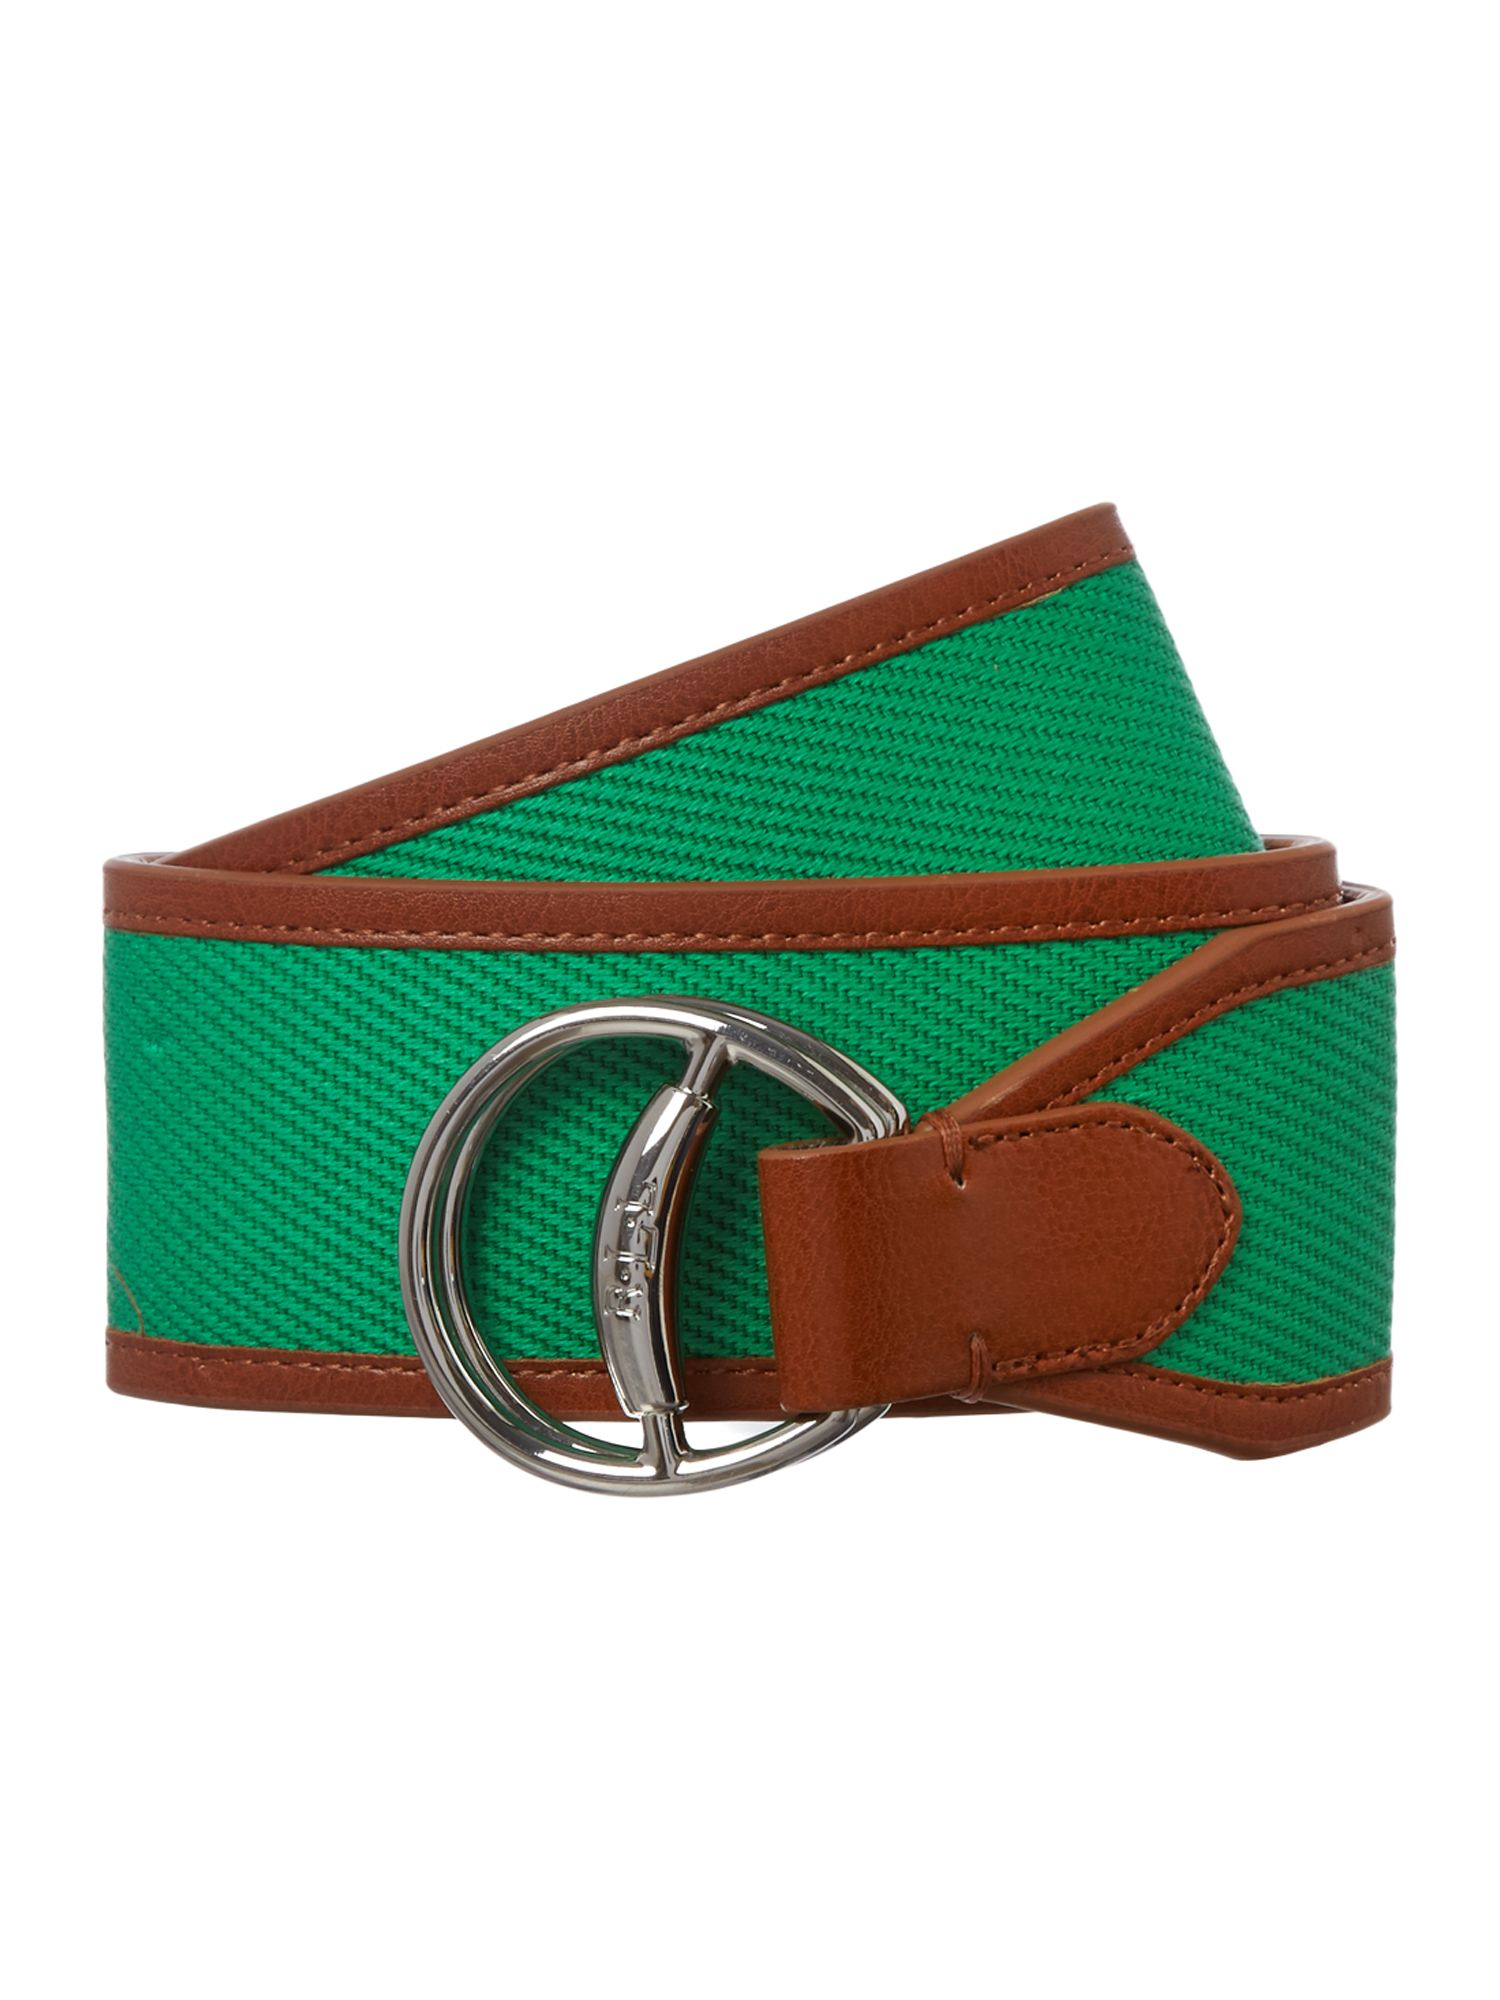 Leather and canvas belt with equestrian detail